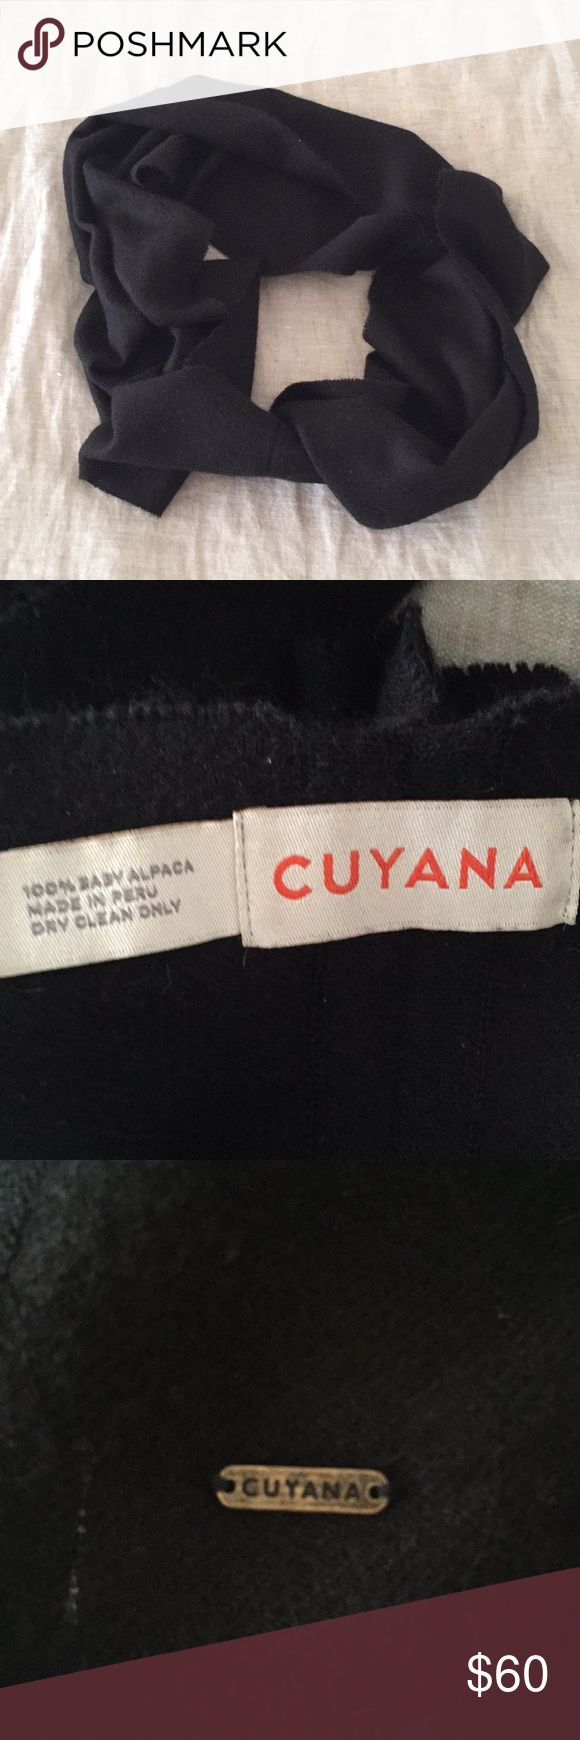 Cuyana baby alpaca scarf, black Cute black circle scarf! Haven't worn much so selling. No issues; great condition. Cuyana Accessories Scarves & Wraps